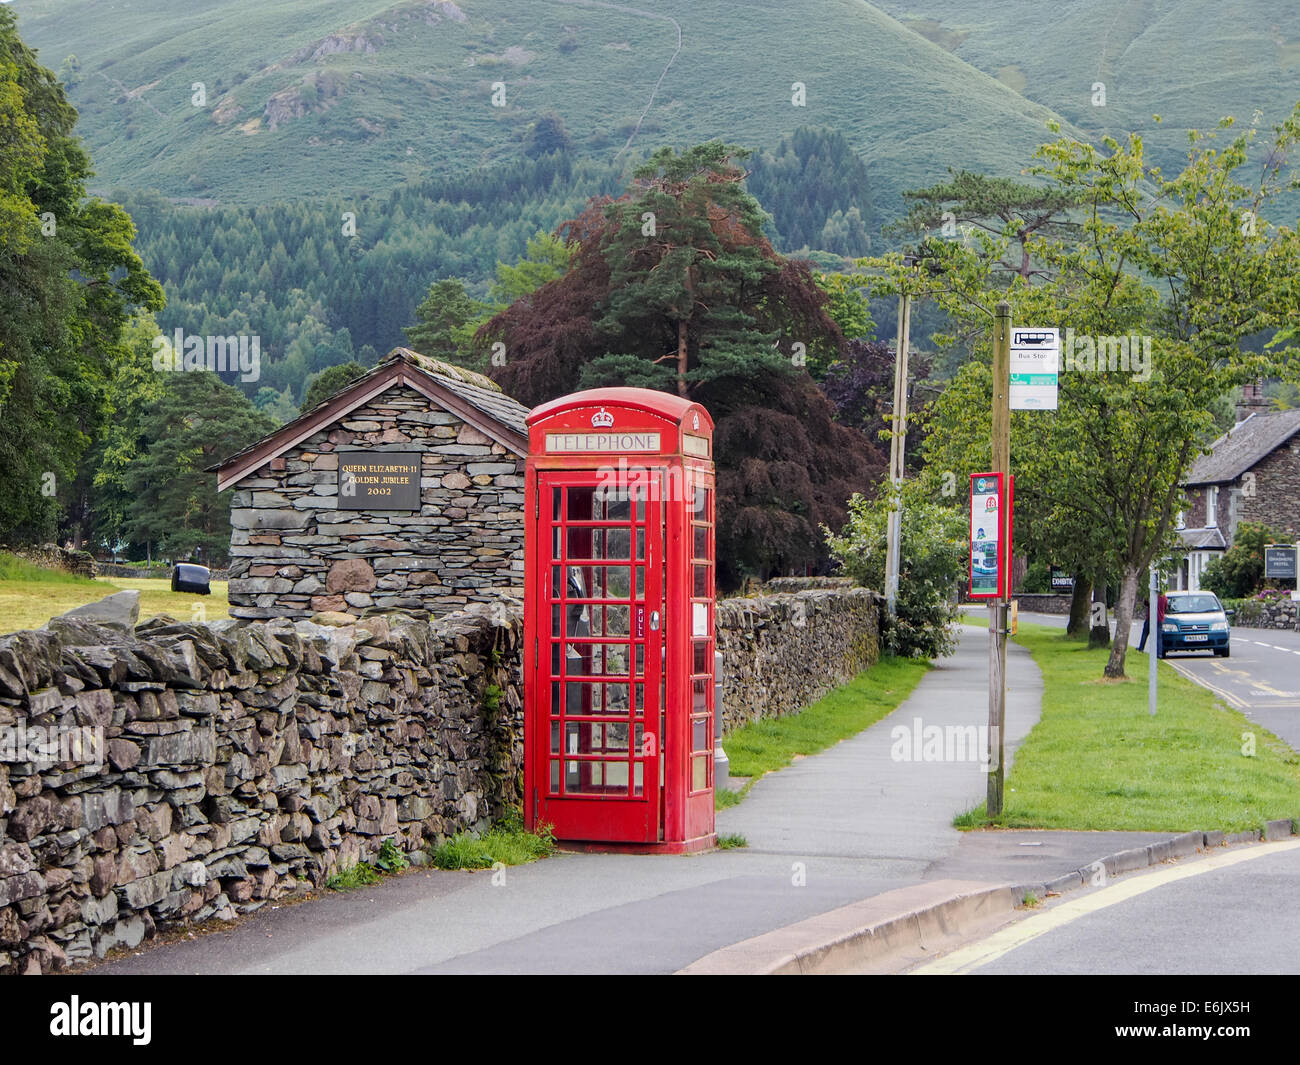 A red telephone box and bus stop in a British rural village - Stock Image